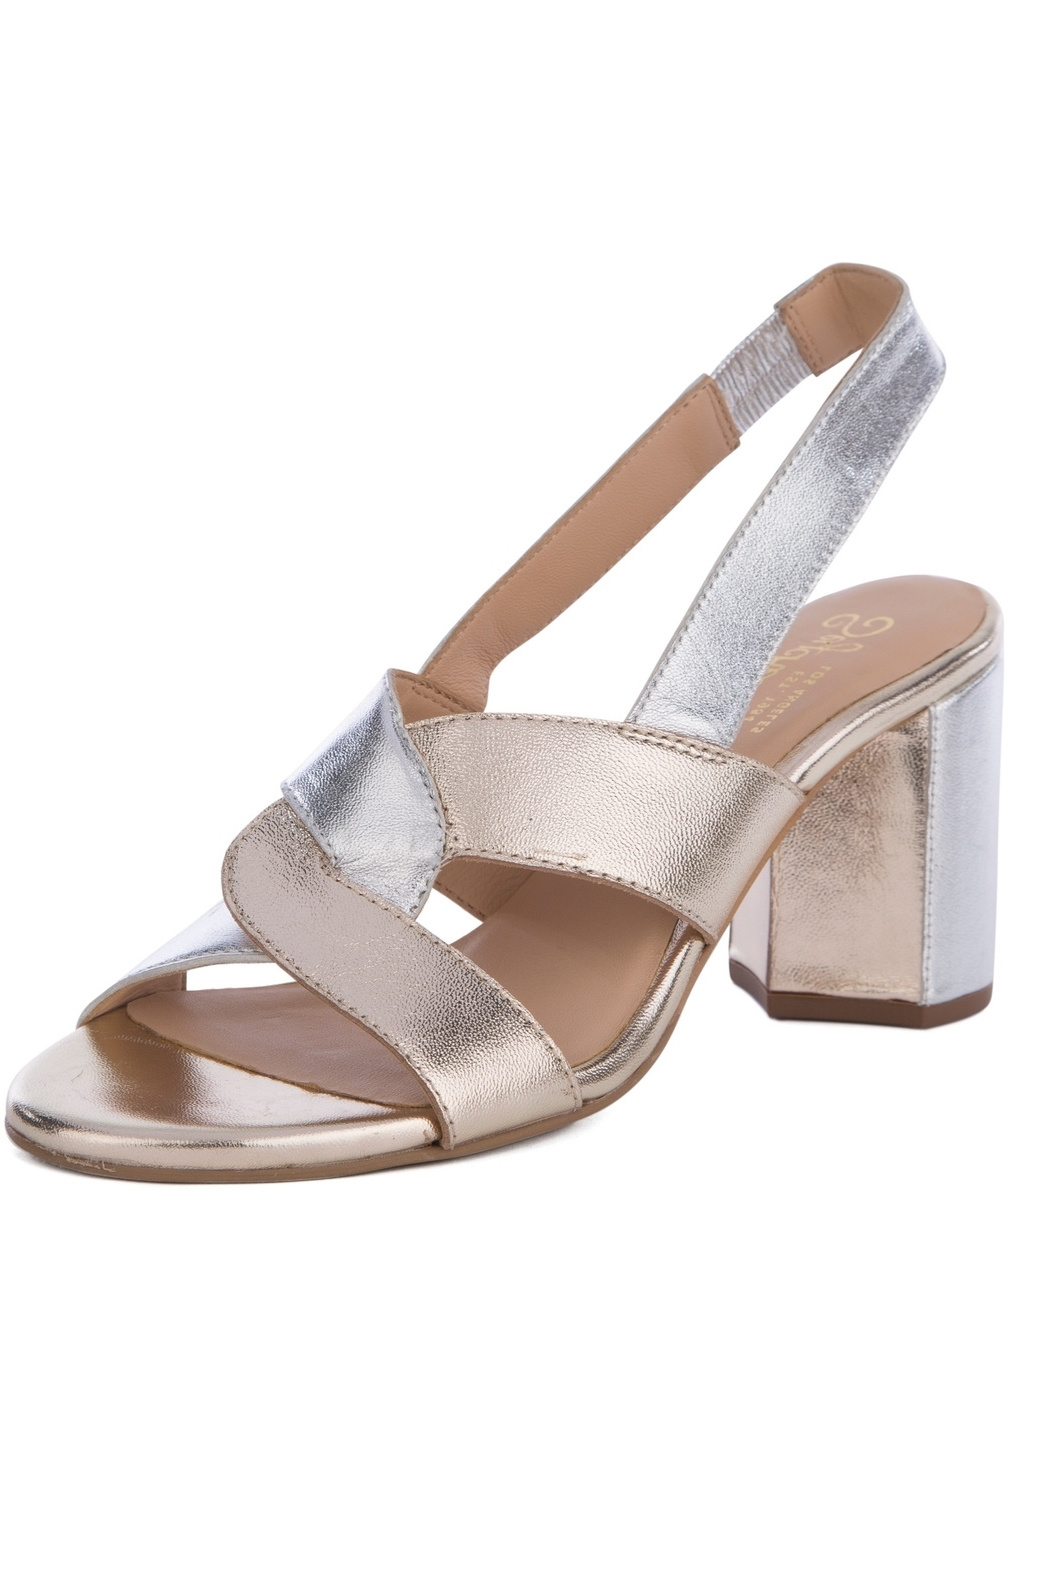 Seychelles Odds and Ends Metallic Heeled Sandals - Main Image